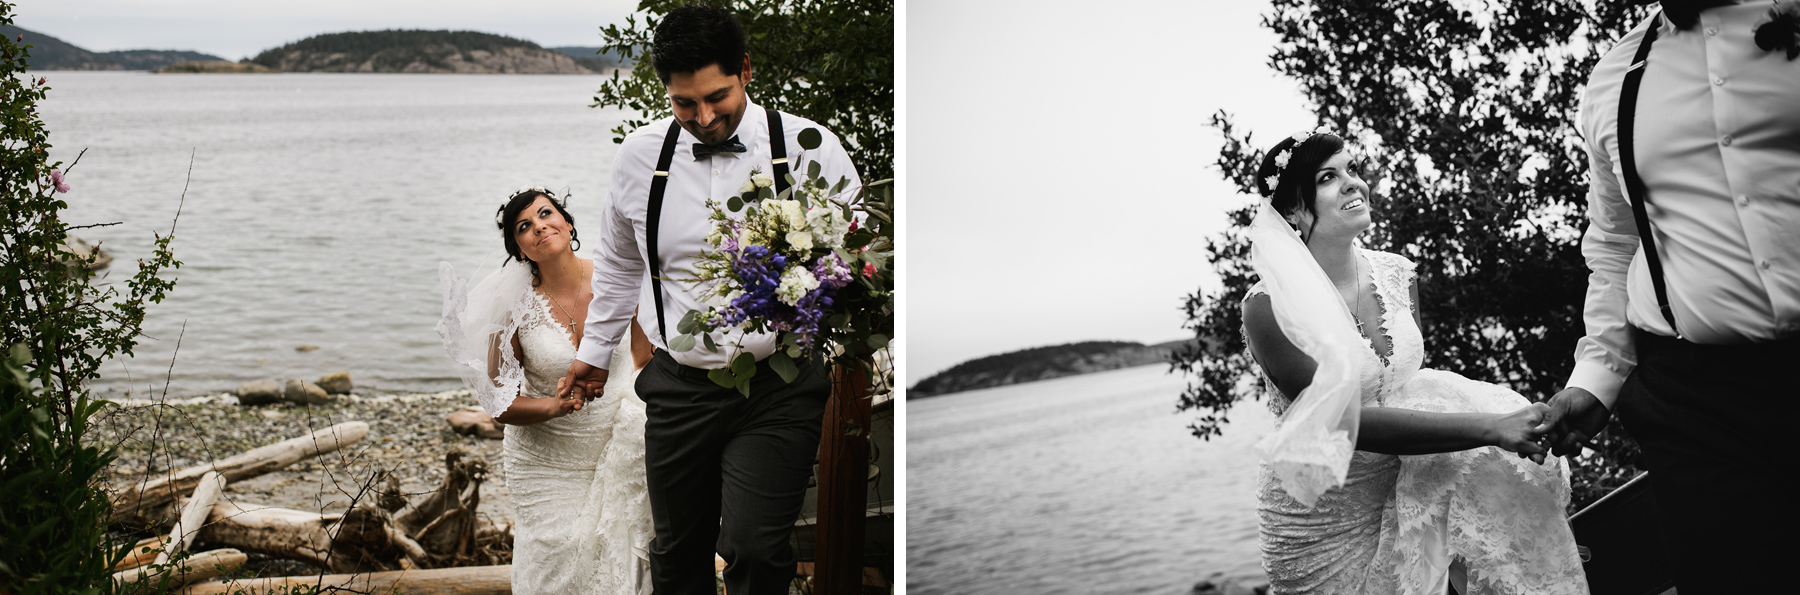 lopez-island-waterfront-wedding-photos-41